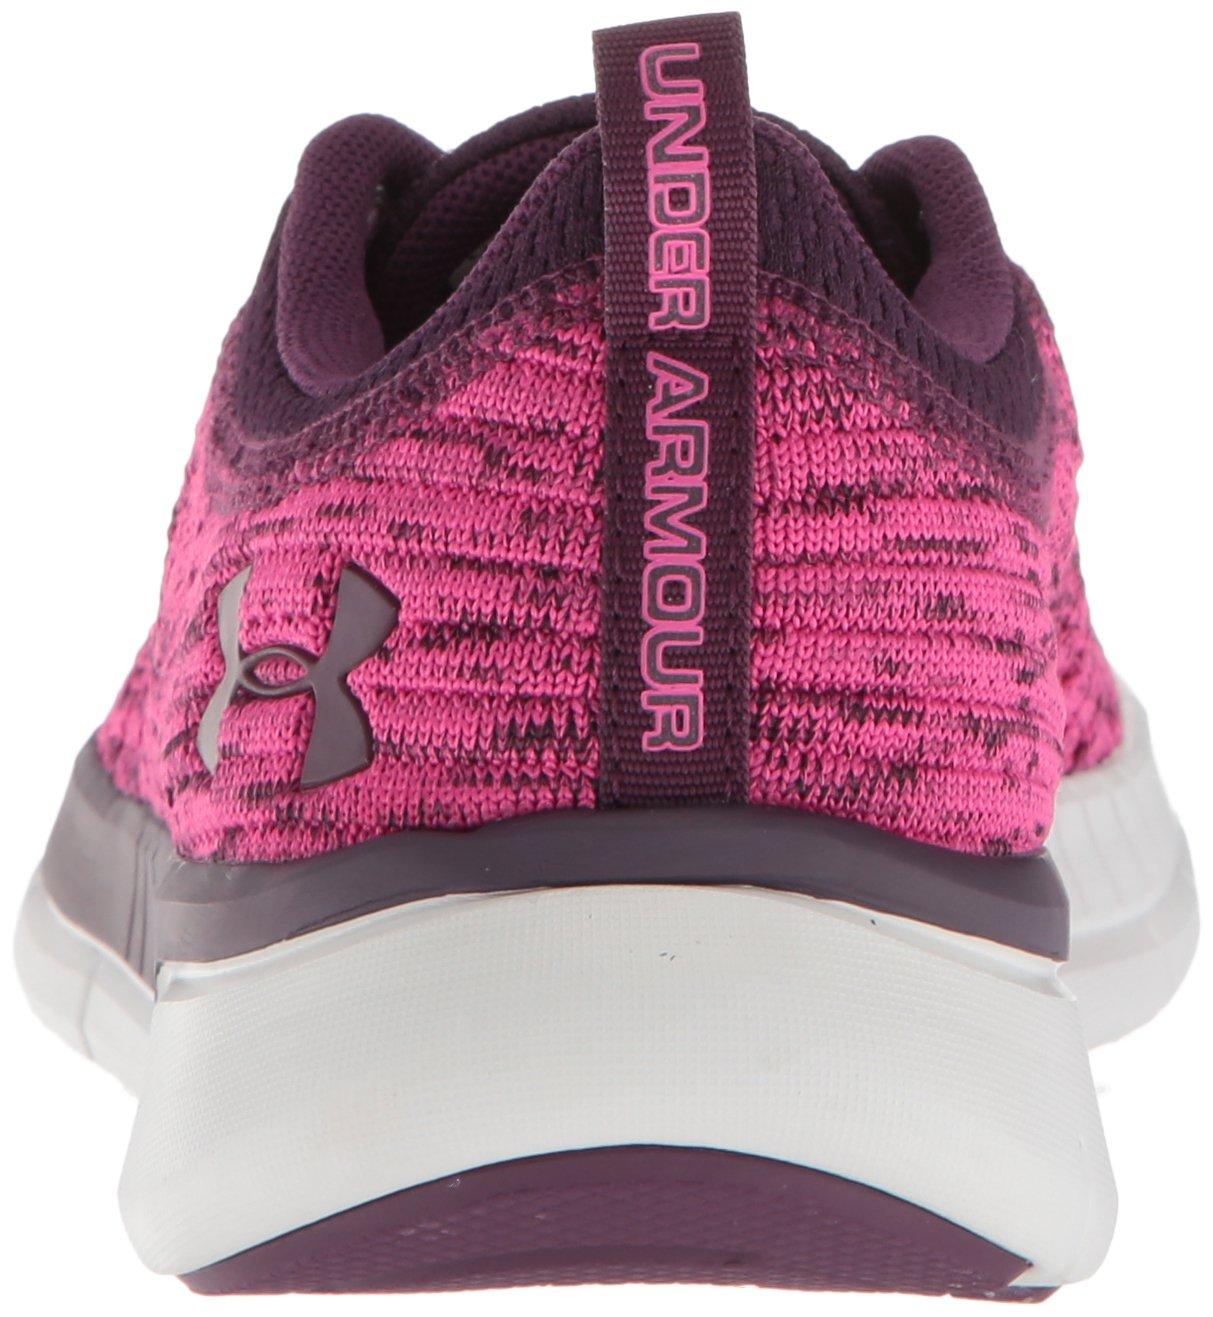 Under Armour Women's Lightning B071HN323D Road Running Running Road f190e2